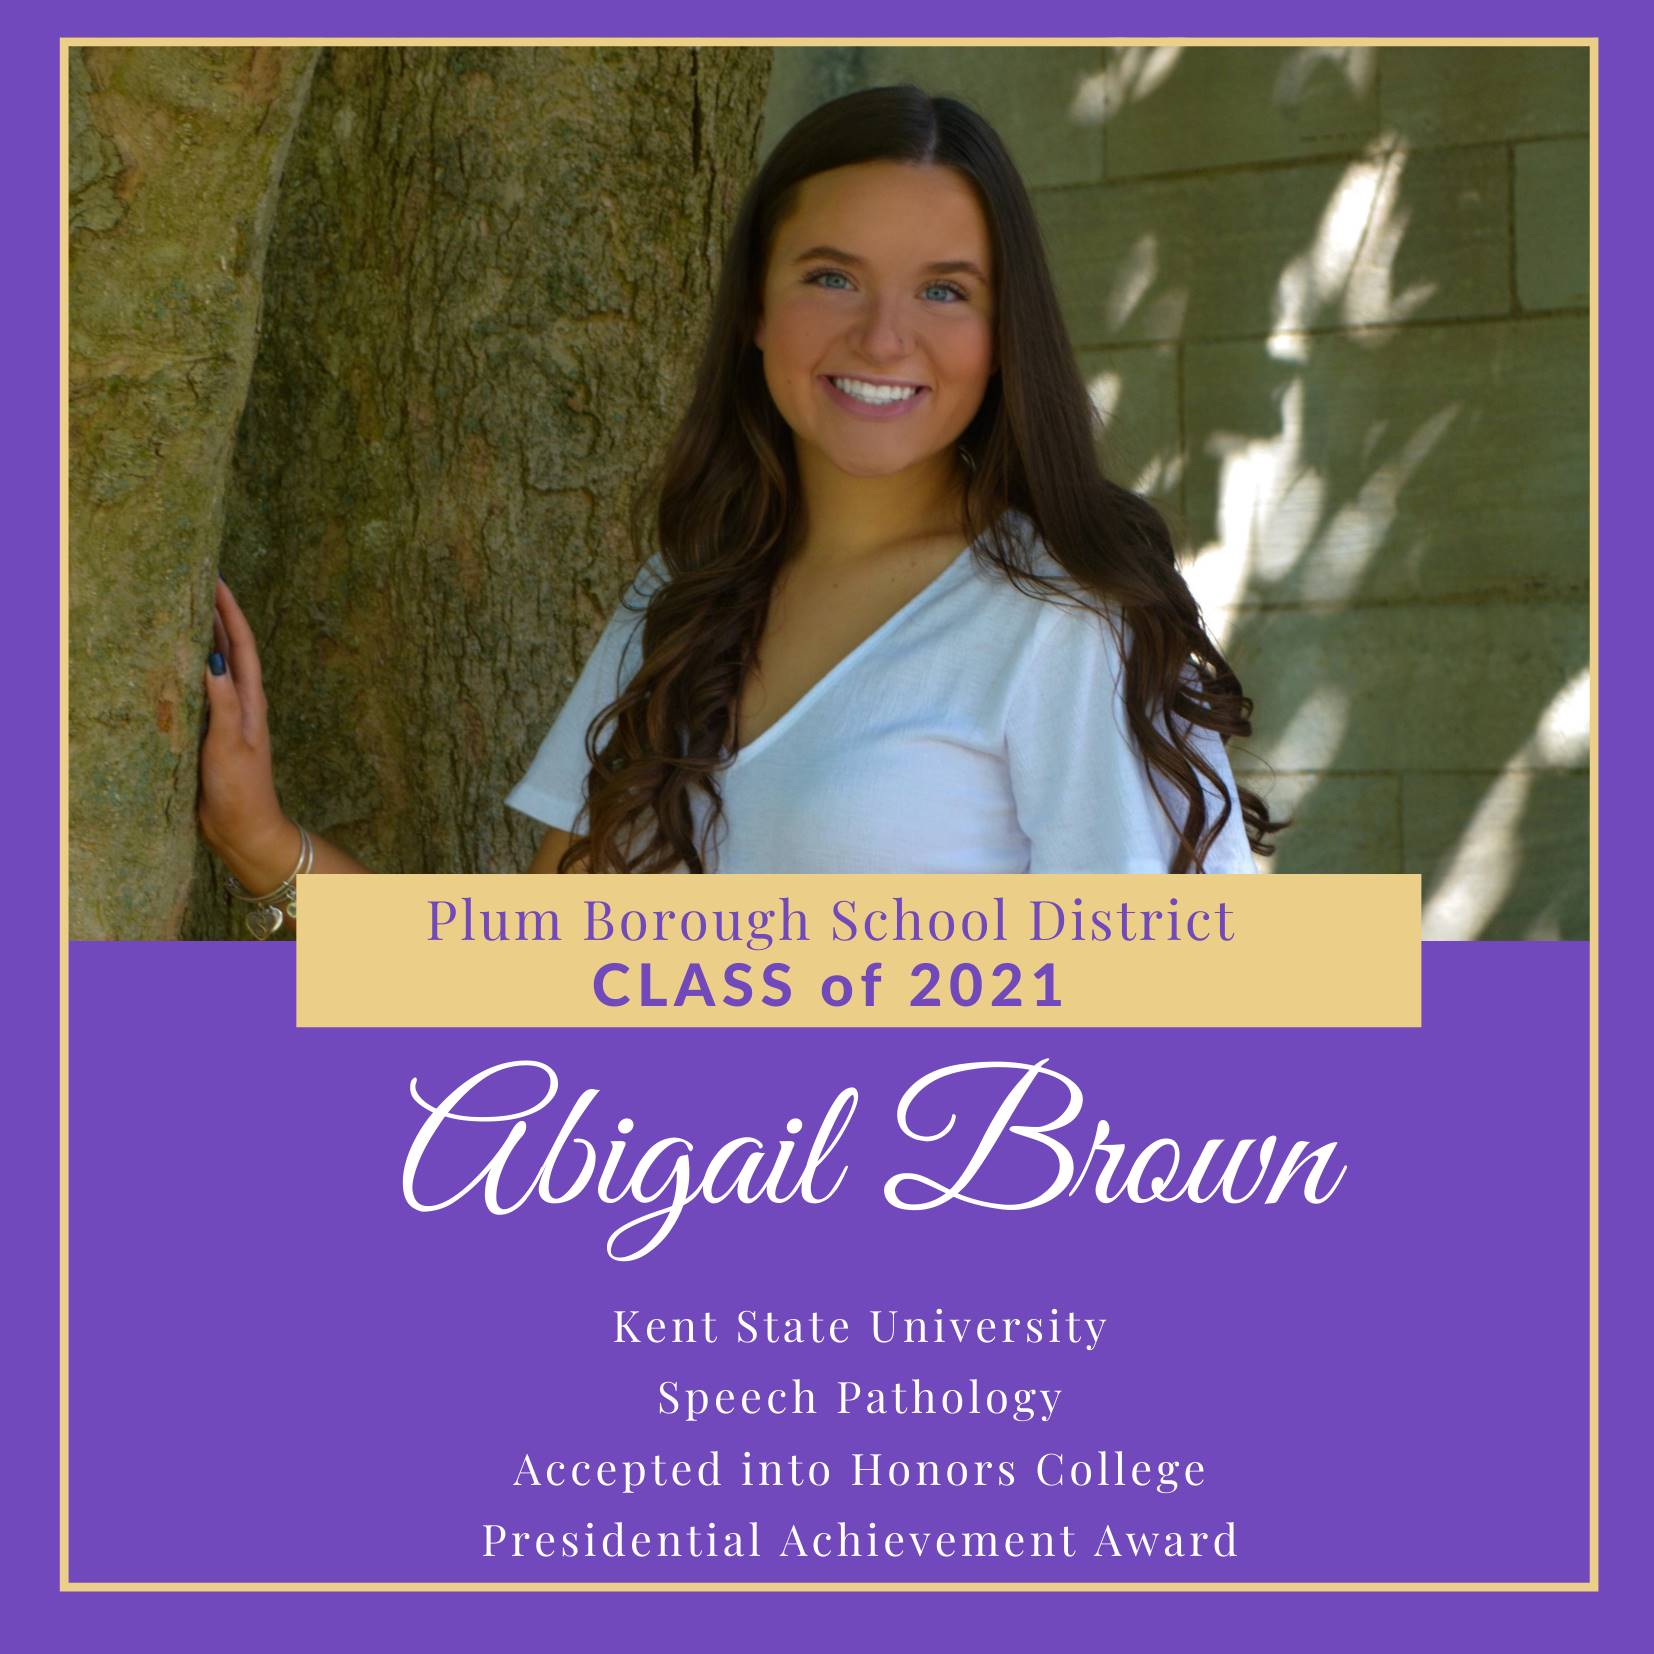 Congratulations to Abigail Brown, Class of 2021!